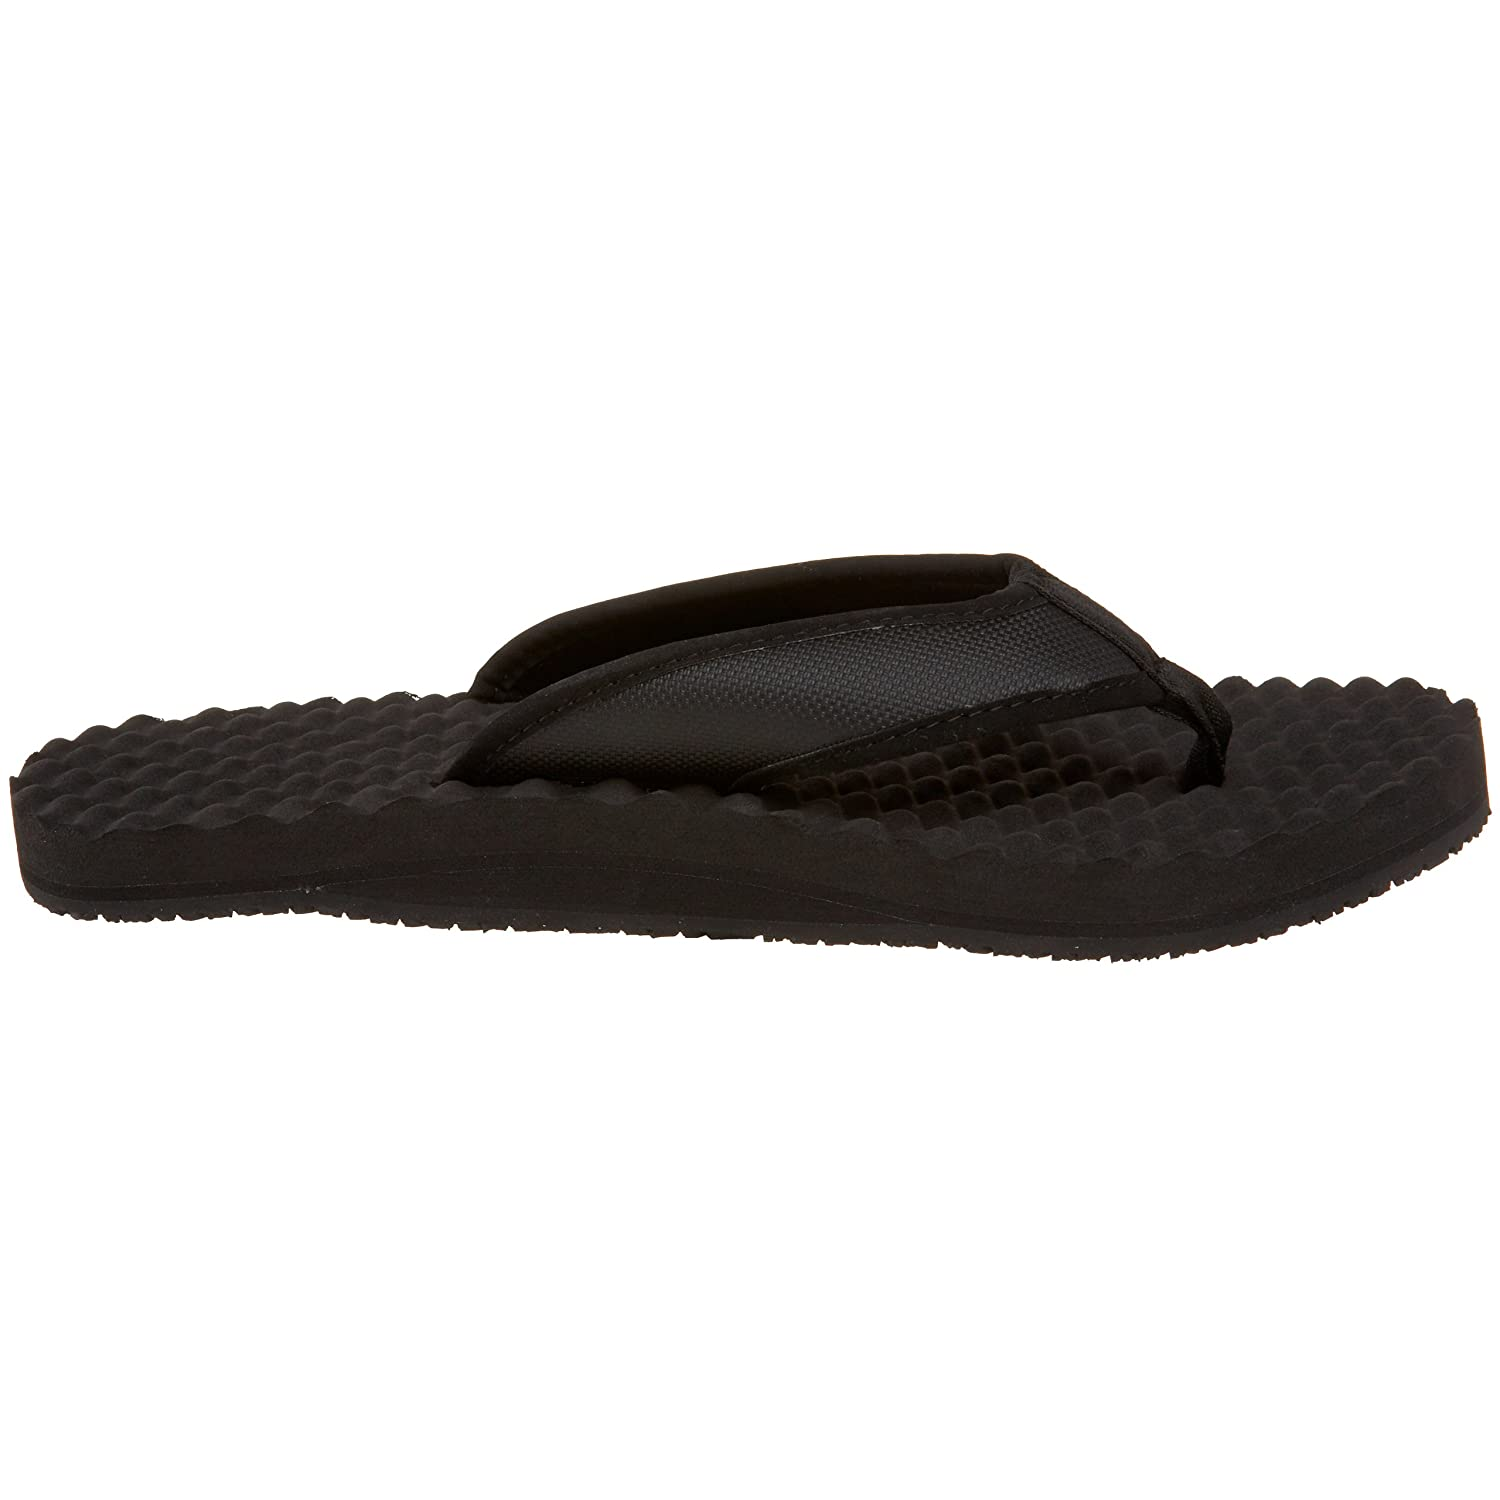 The North Face M Base Camp Flip-Flop Herren Zehentrenner, Black (Black/Black 002), 45.5 EU/11 UK/12 US